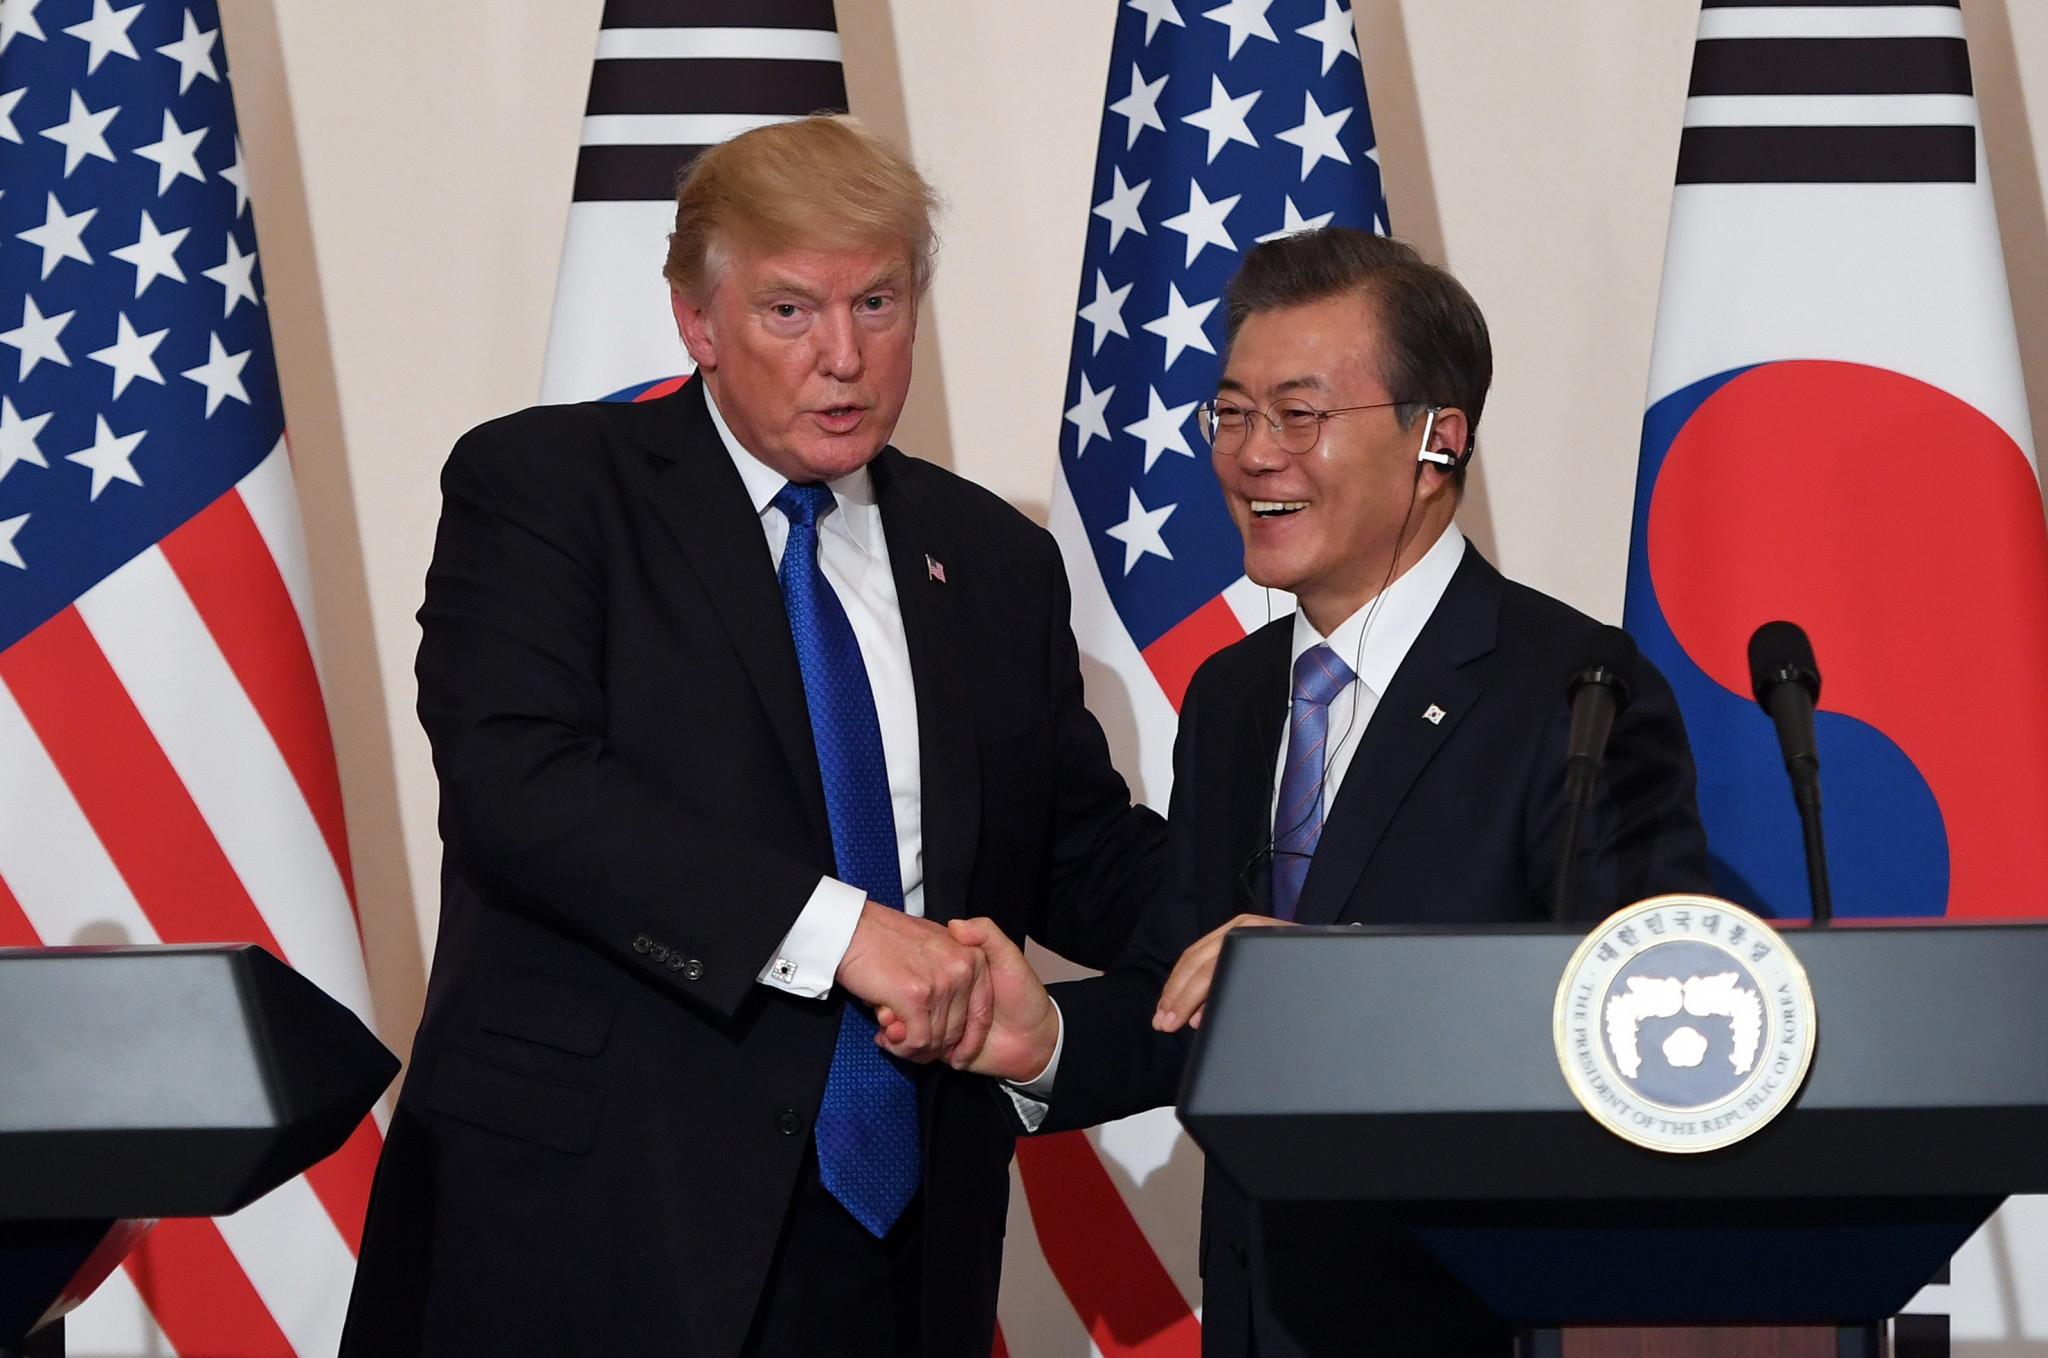 South Korea's President Moon Jae-in has claimed that US counterpart Donald Trump has promised to help ensure the safety of the Pyeongchang 2018 Winter Olympic Games from North Korean threats ©Getty Images